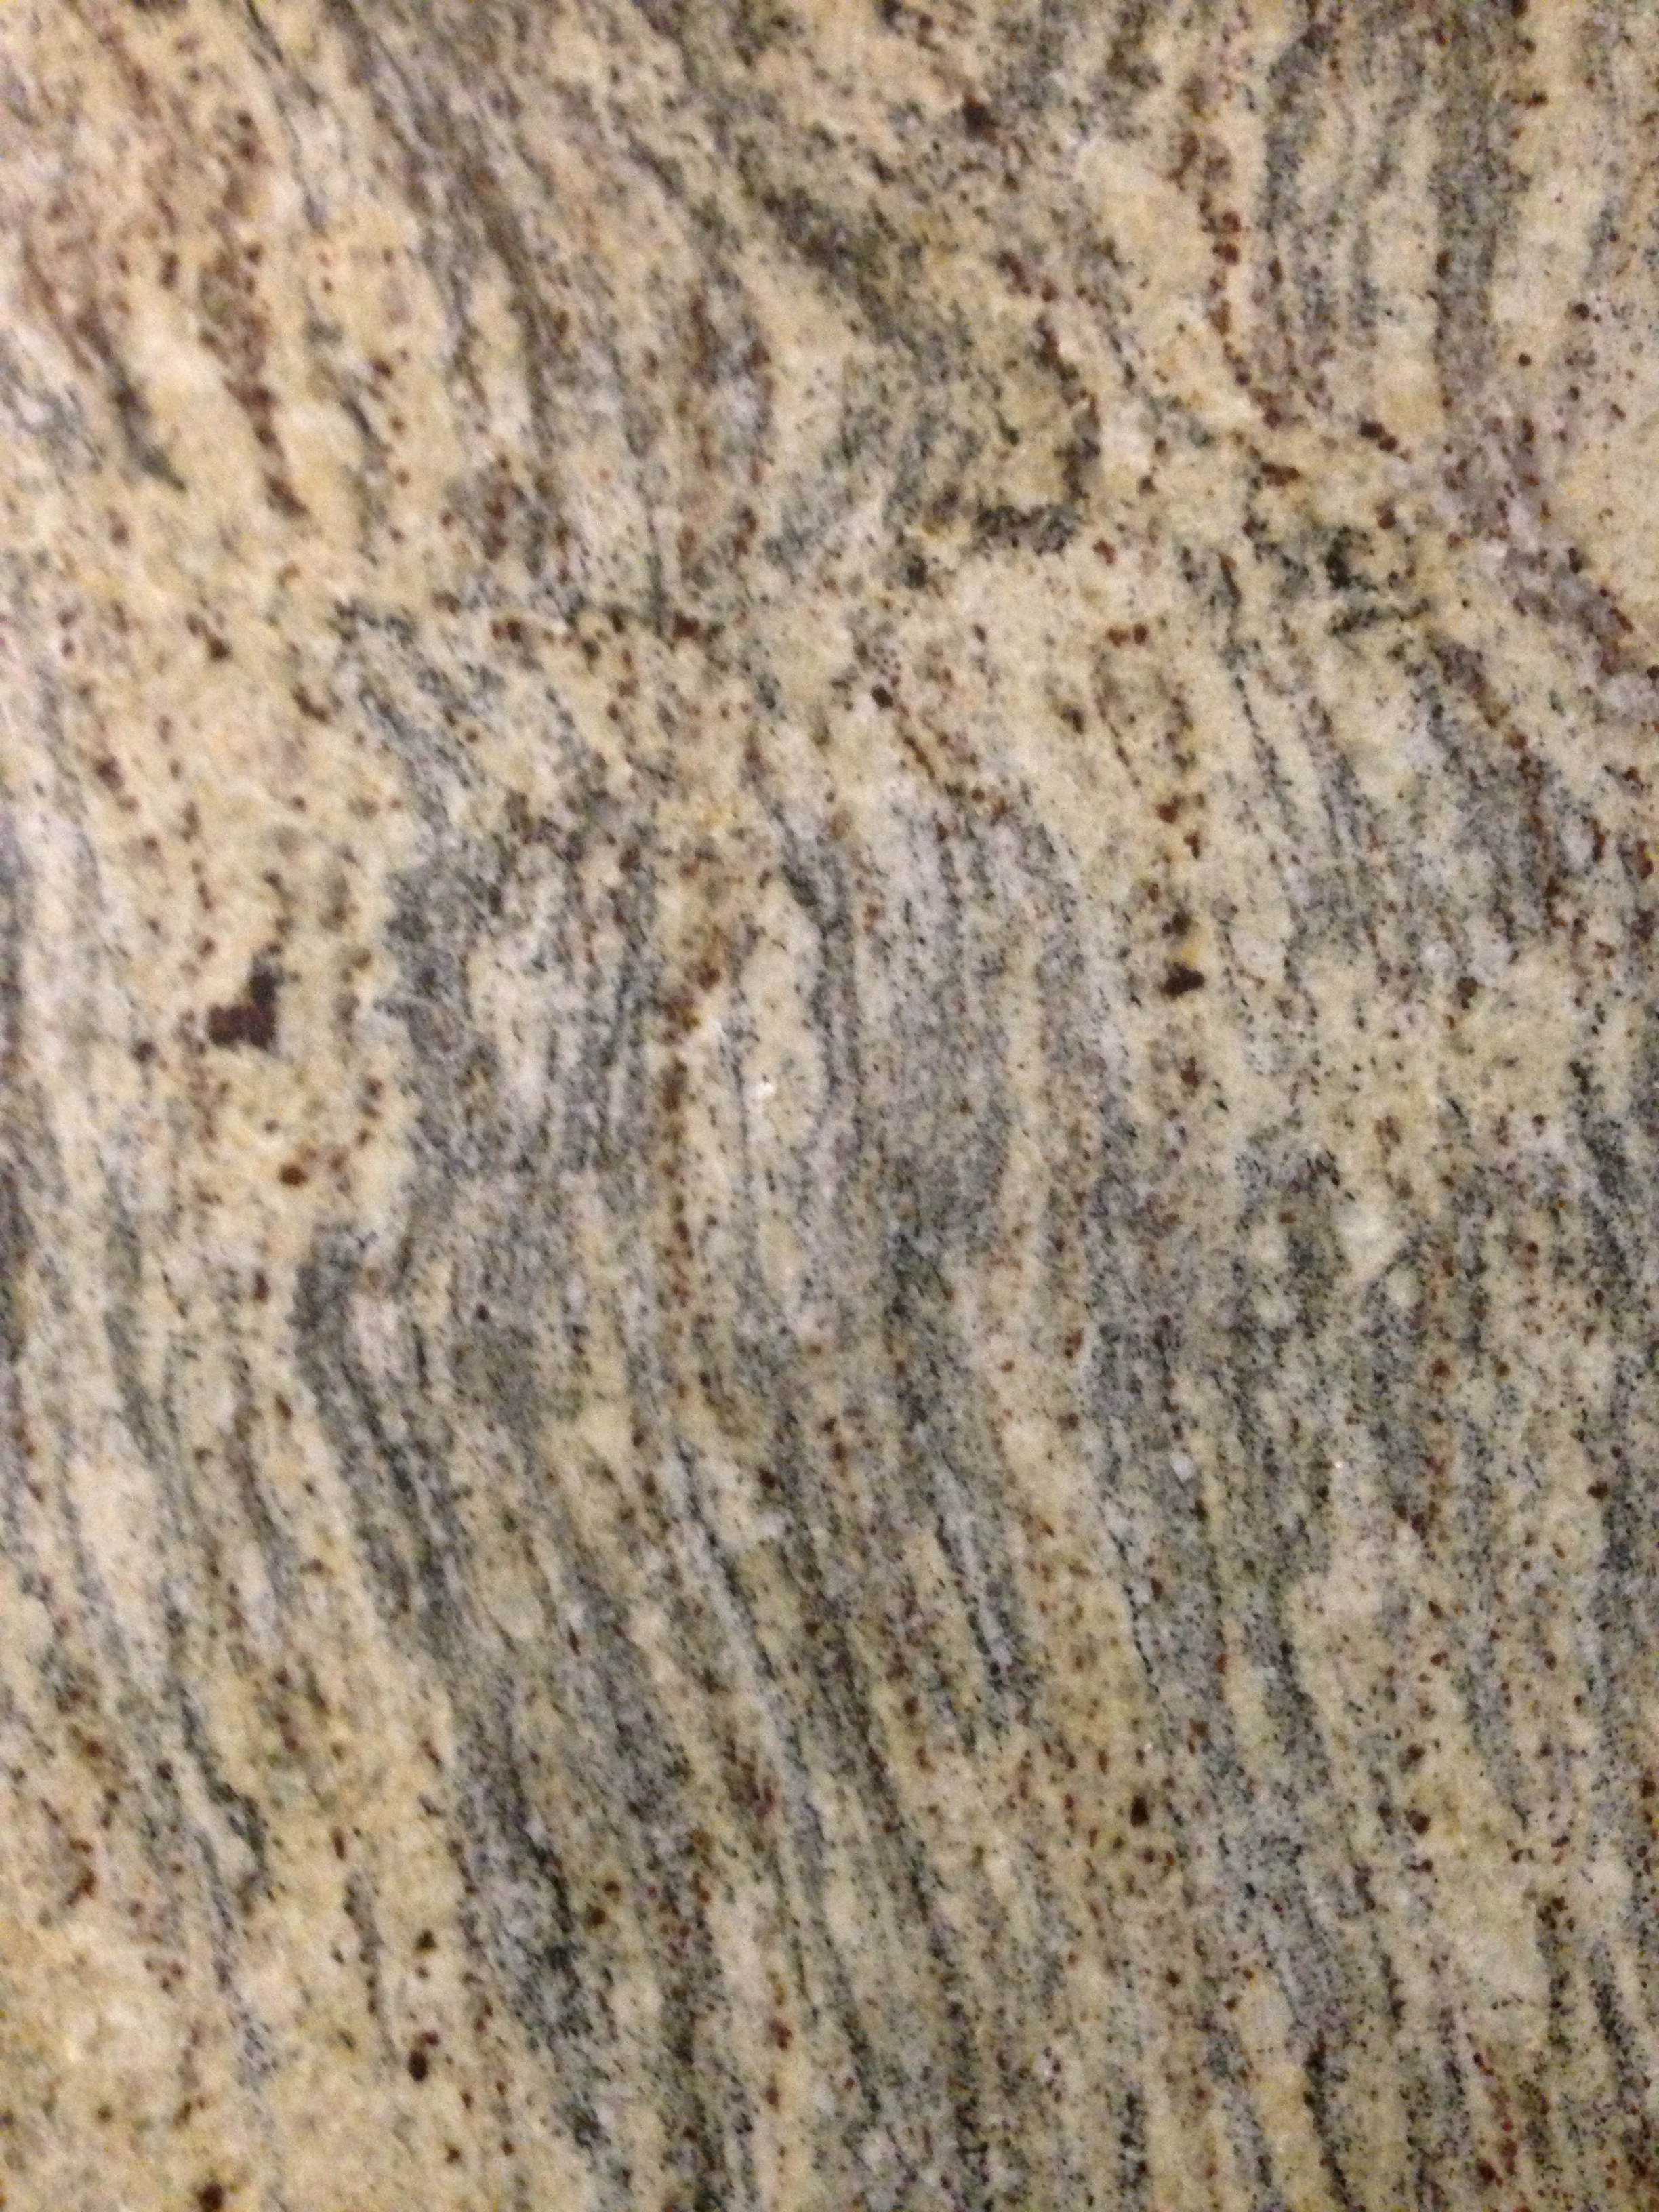 How To Get Stains Off Marble Countertop How To Remove Coffee Or Wine Stains From Your Granite